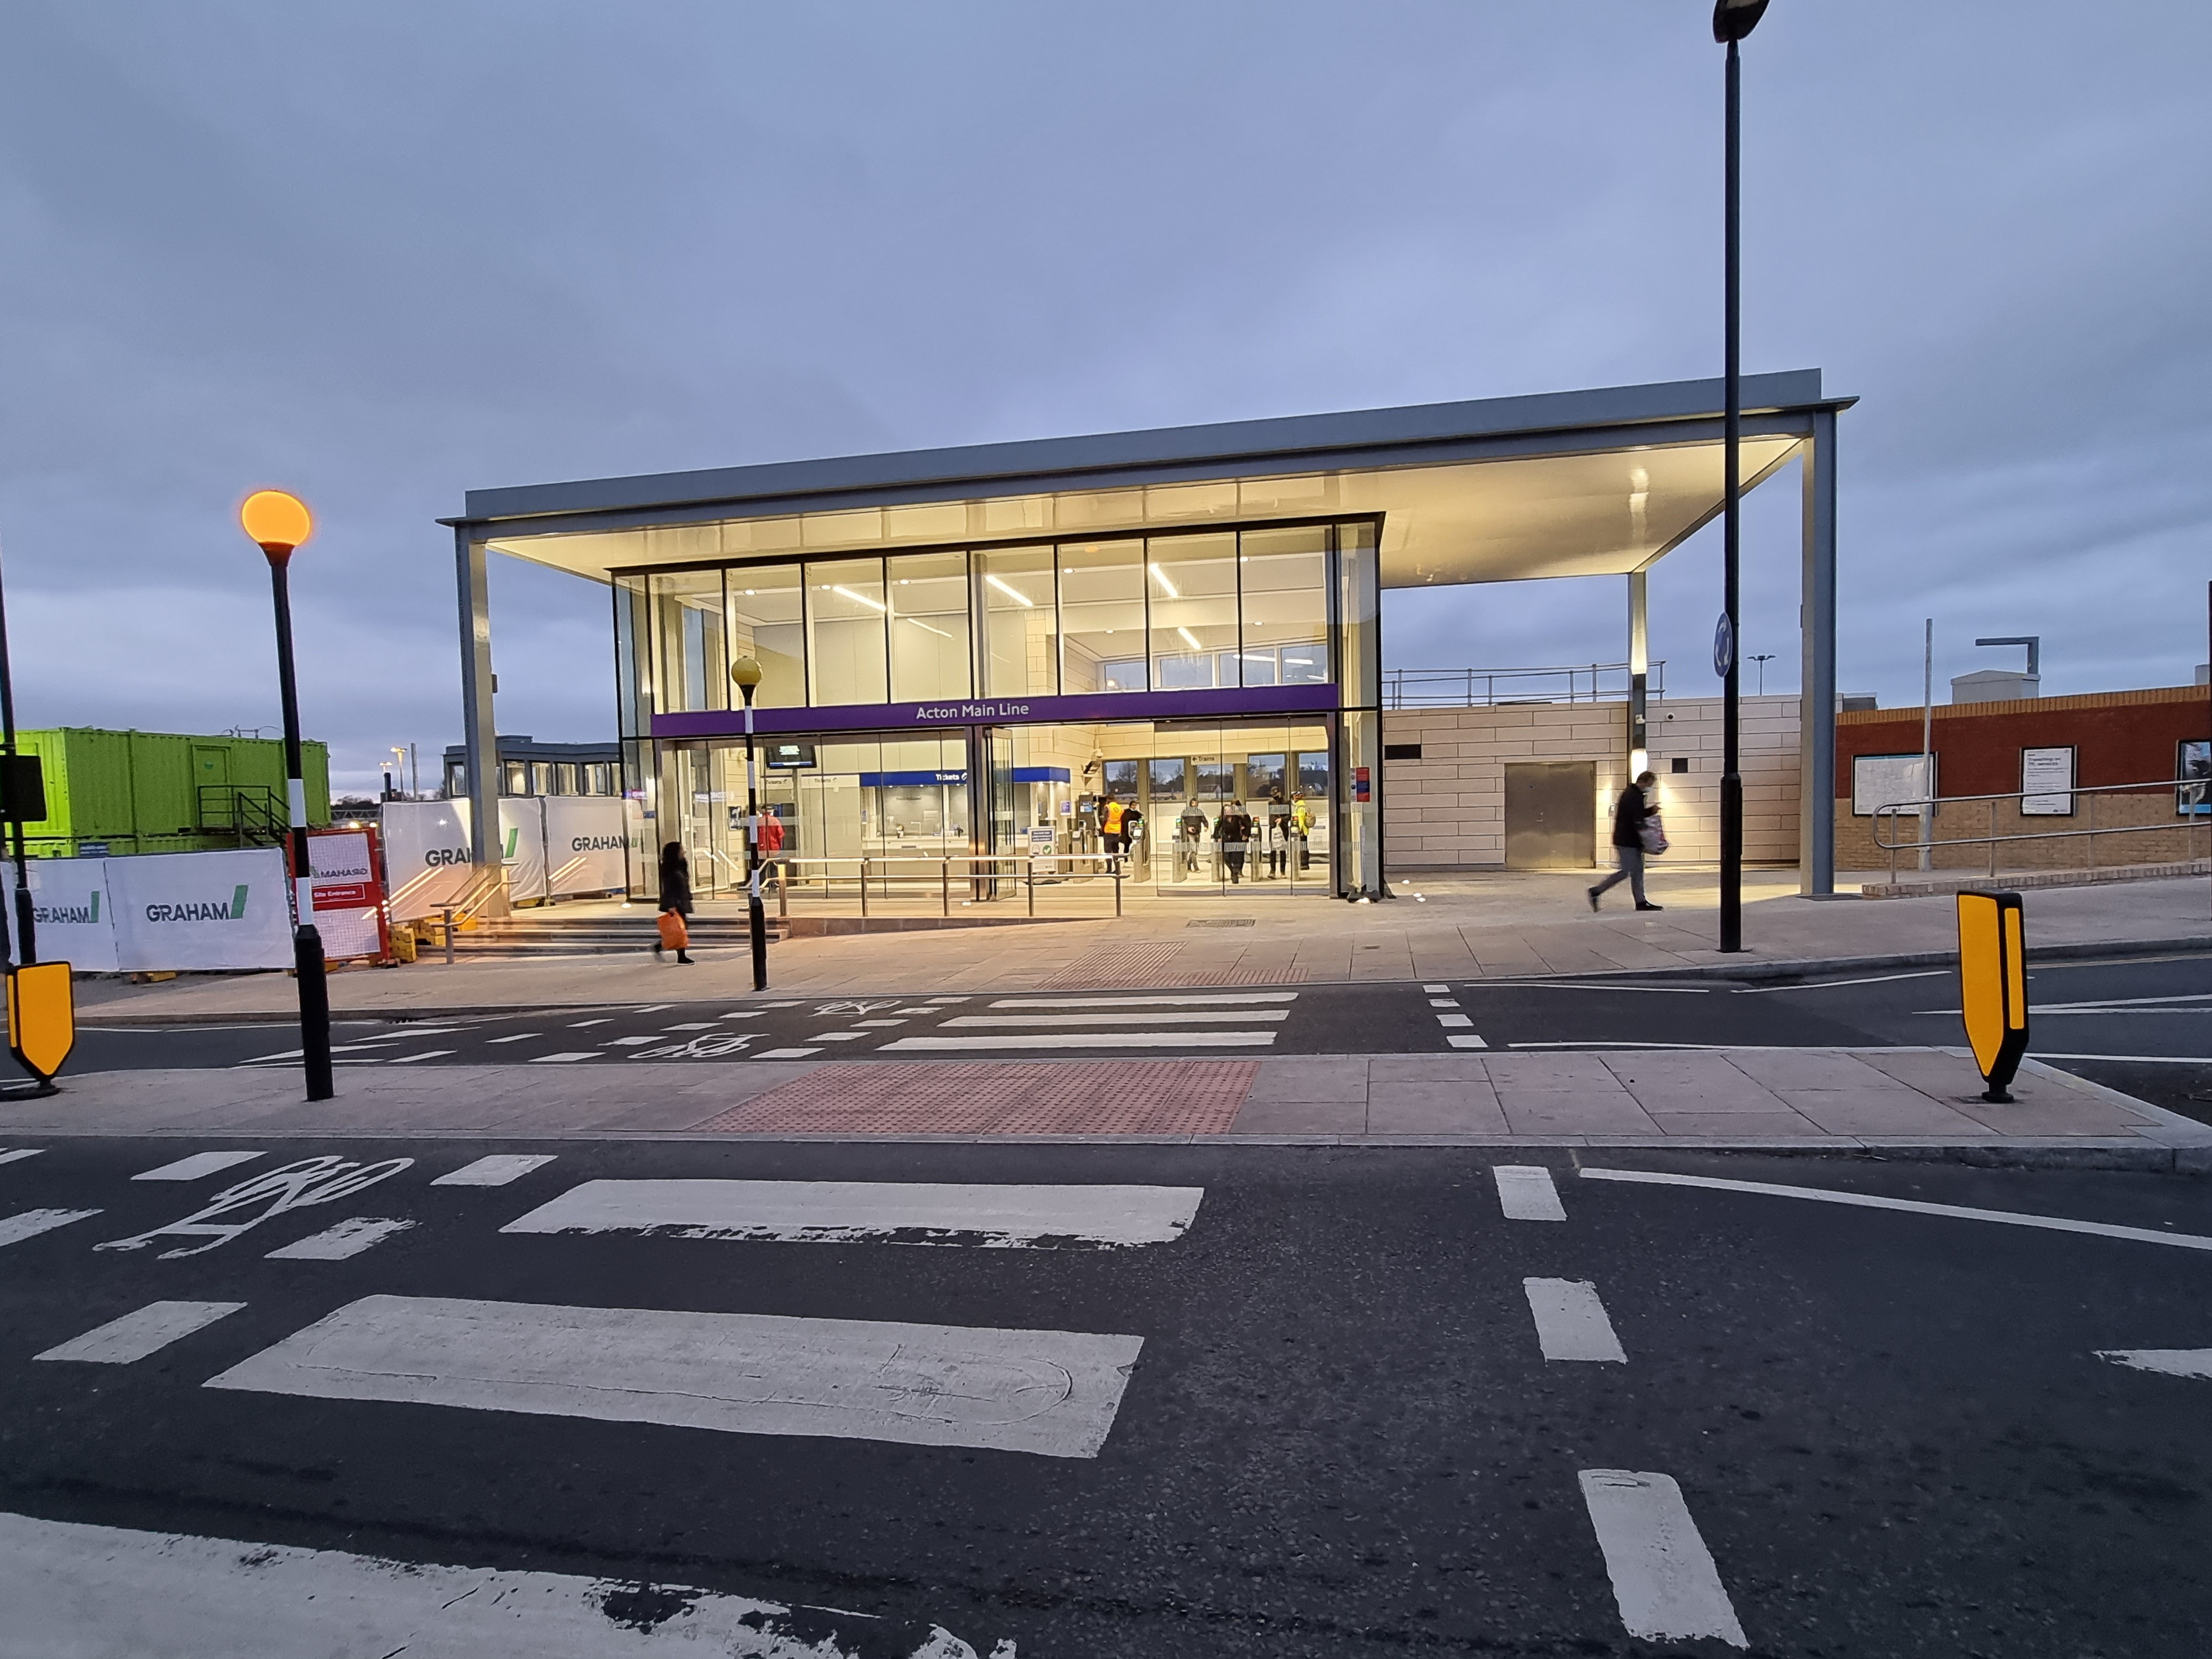 GRAHAM completes first station on Crossrail Work Package 2 image